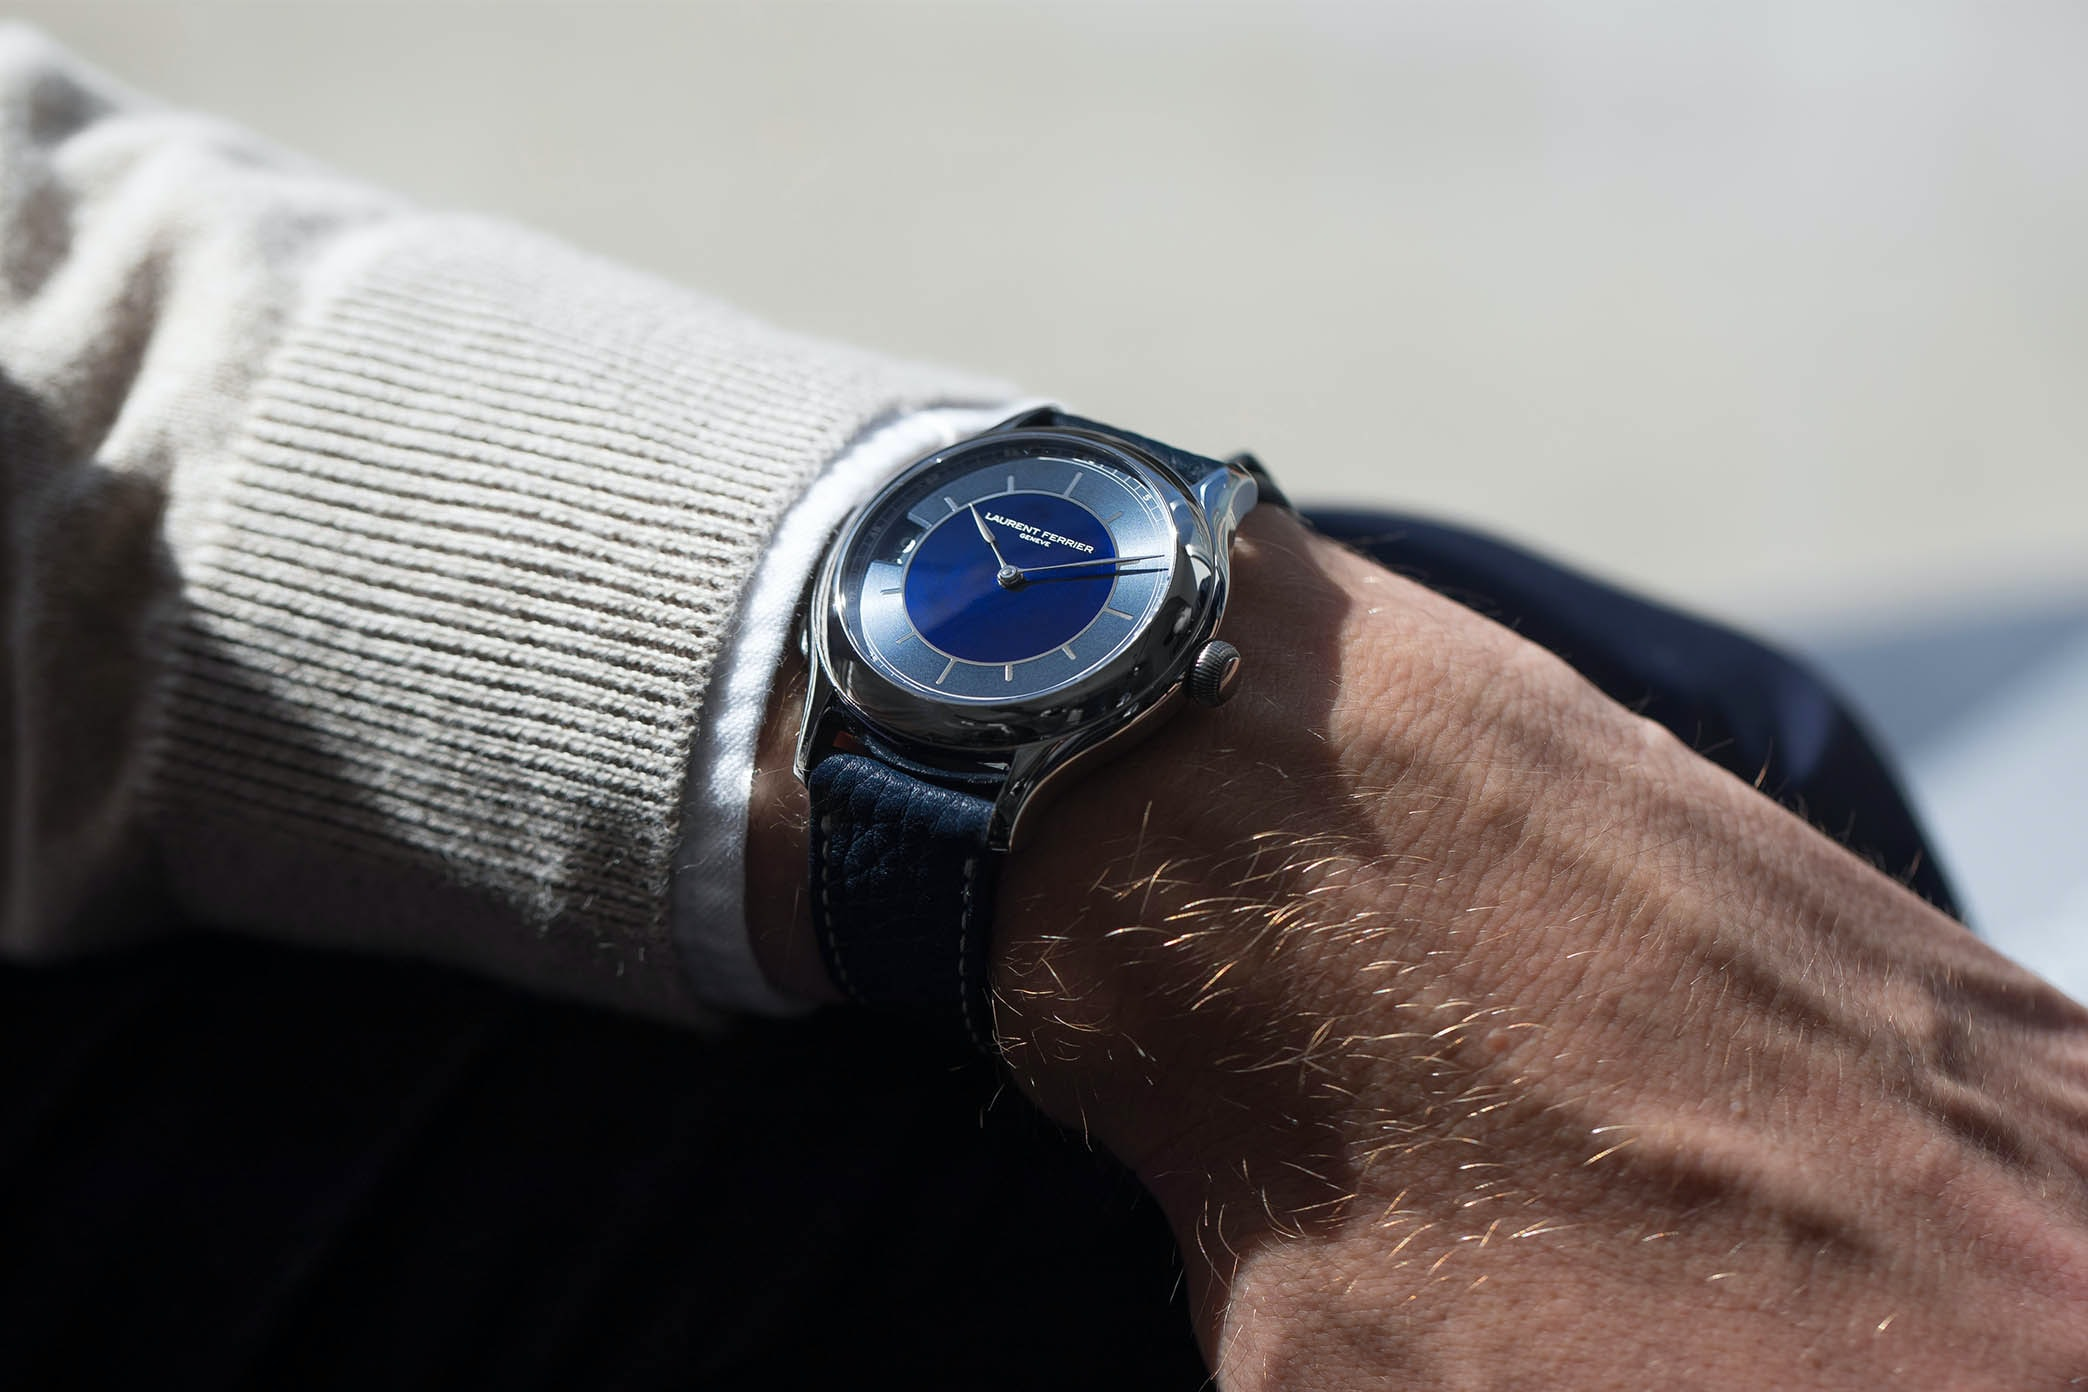 In The Shop: Introducing The Laurent Ferrier Traveller Limited Edition For HODINKEE hodinkee 001